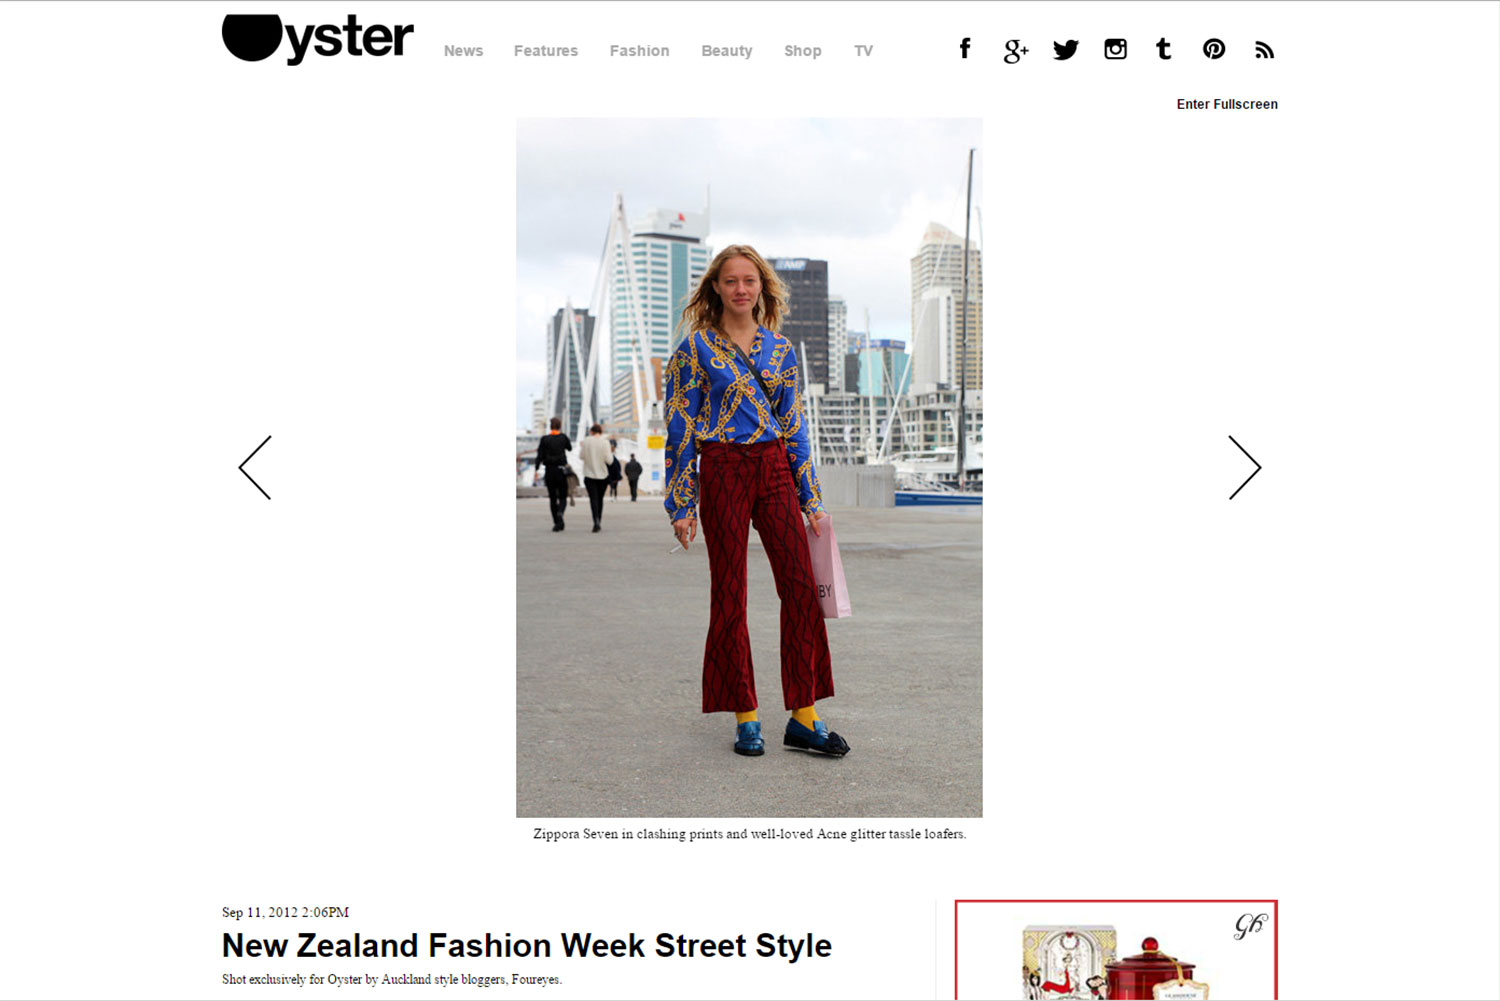 FOUREYES streetstyle photographs featured in Oyster